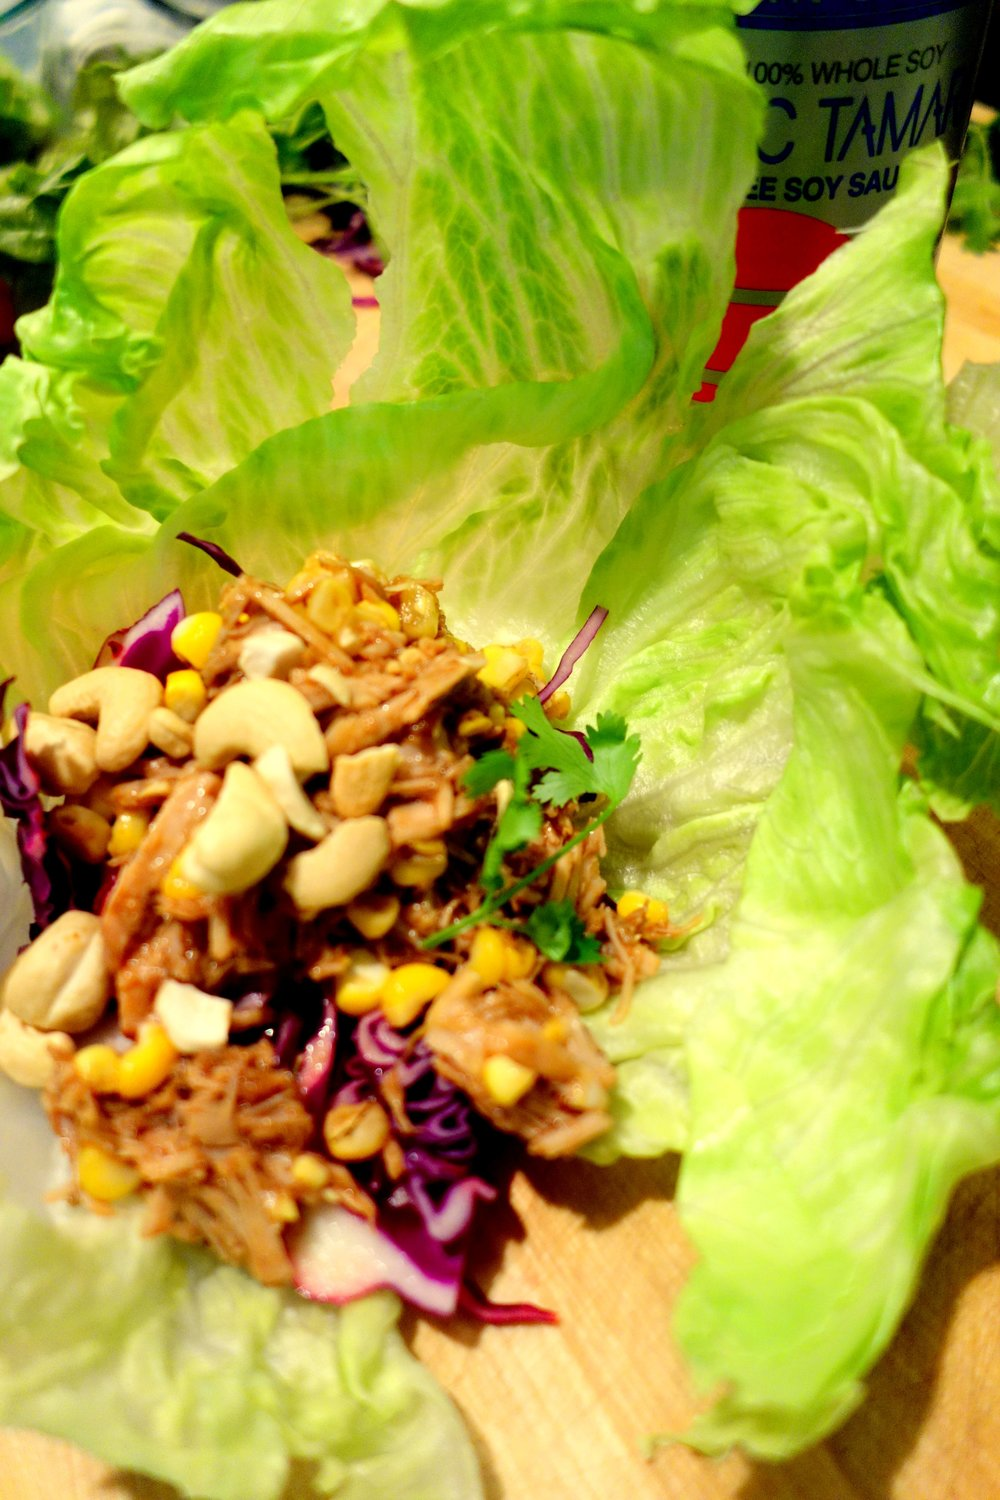 Braised pork wrap, cabbage, corn, cashews, soy